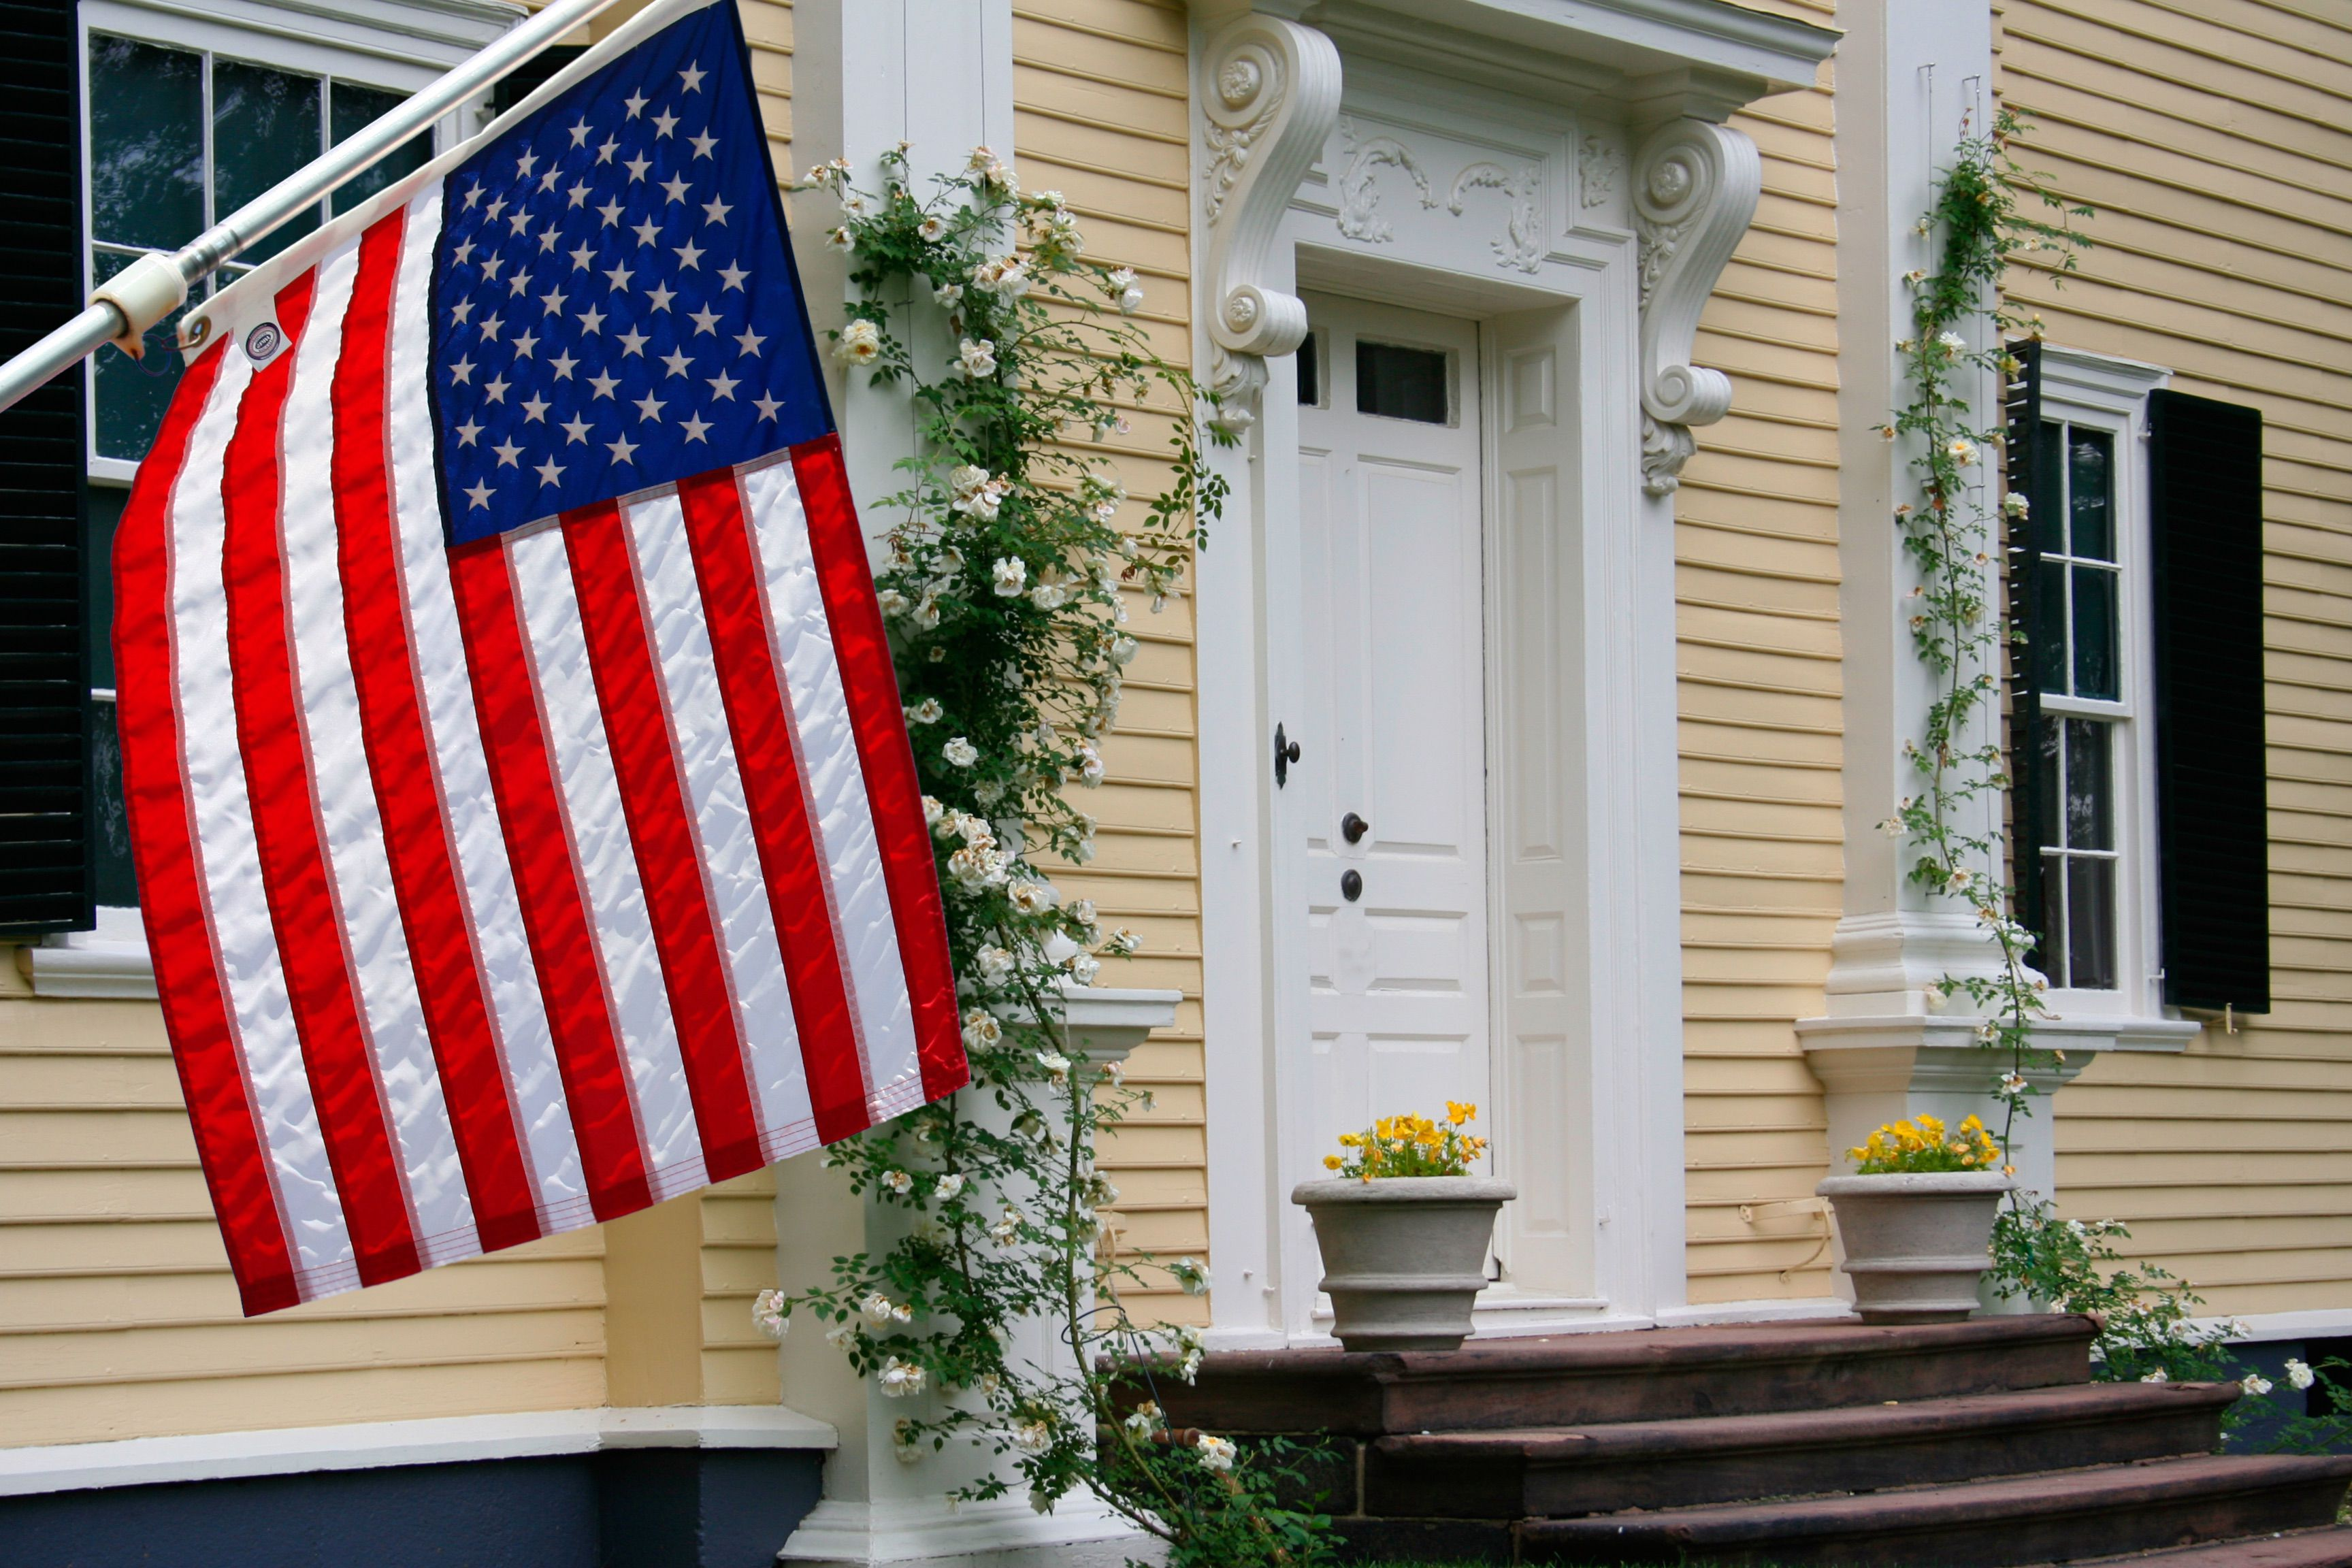 American Flag Hangs From the Clapboard Siding on a Colonial Home in Boston, Massachusetts